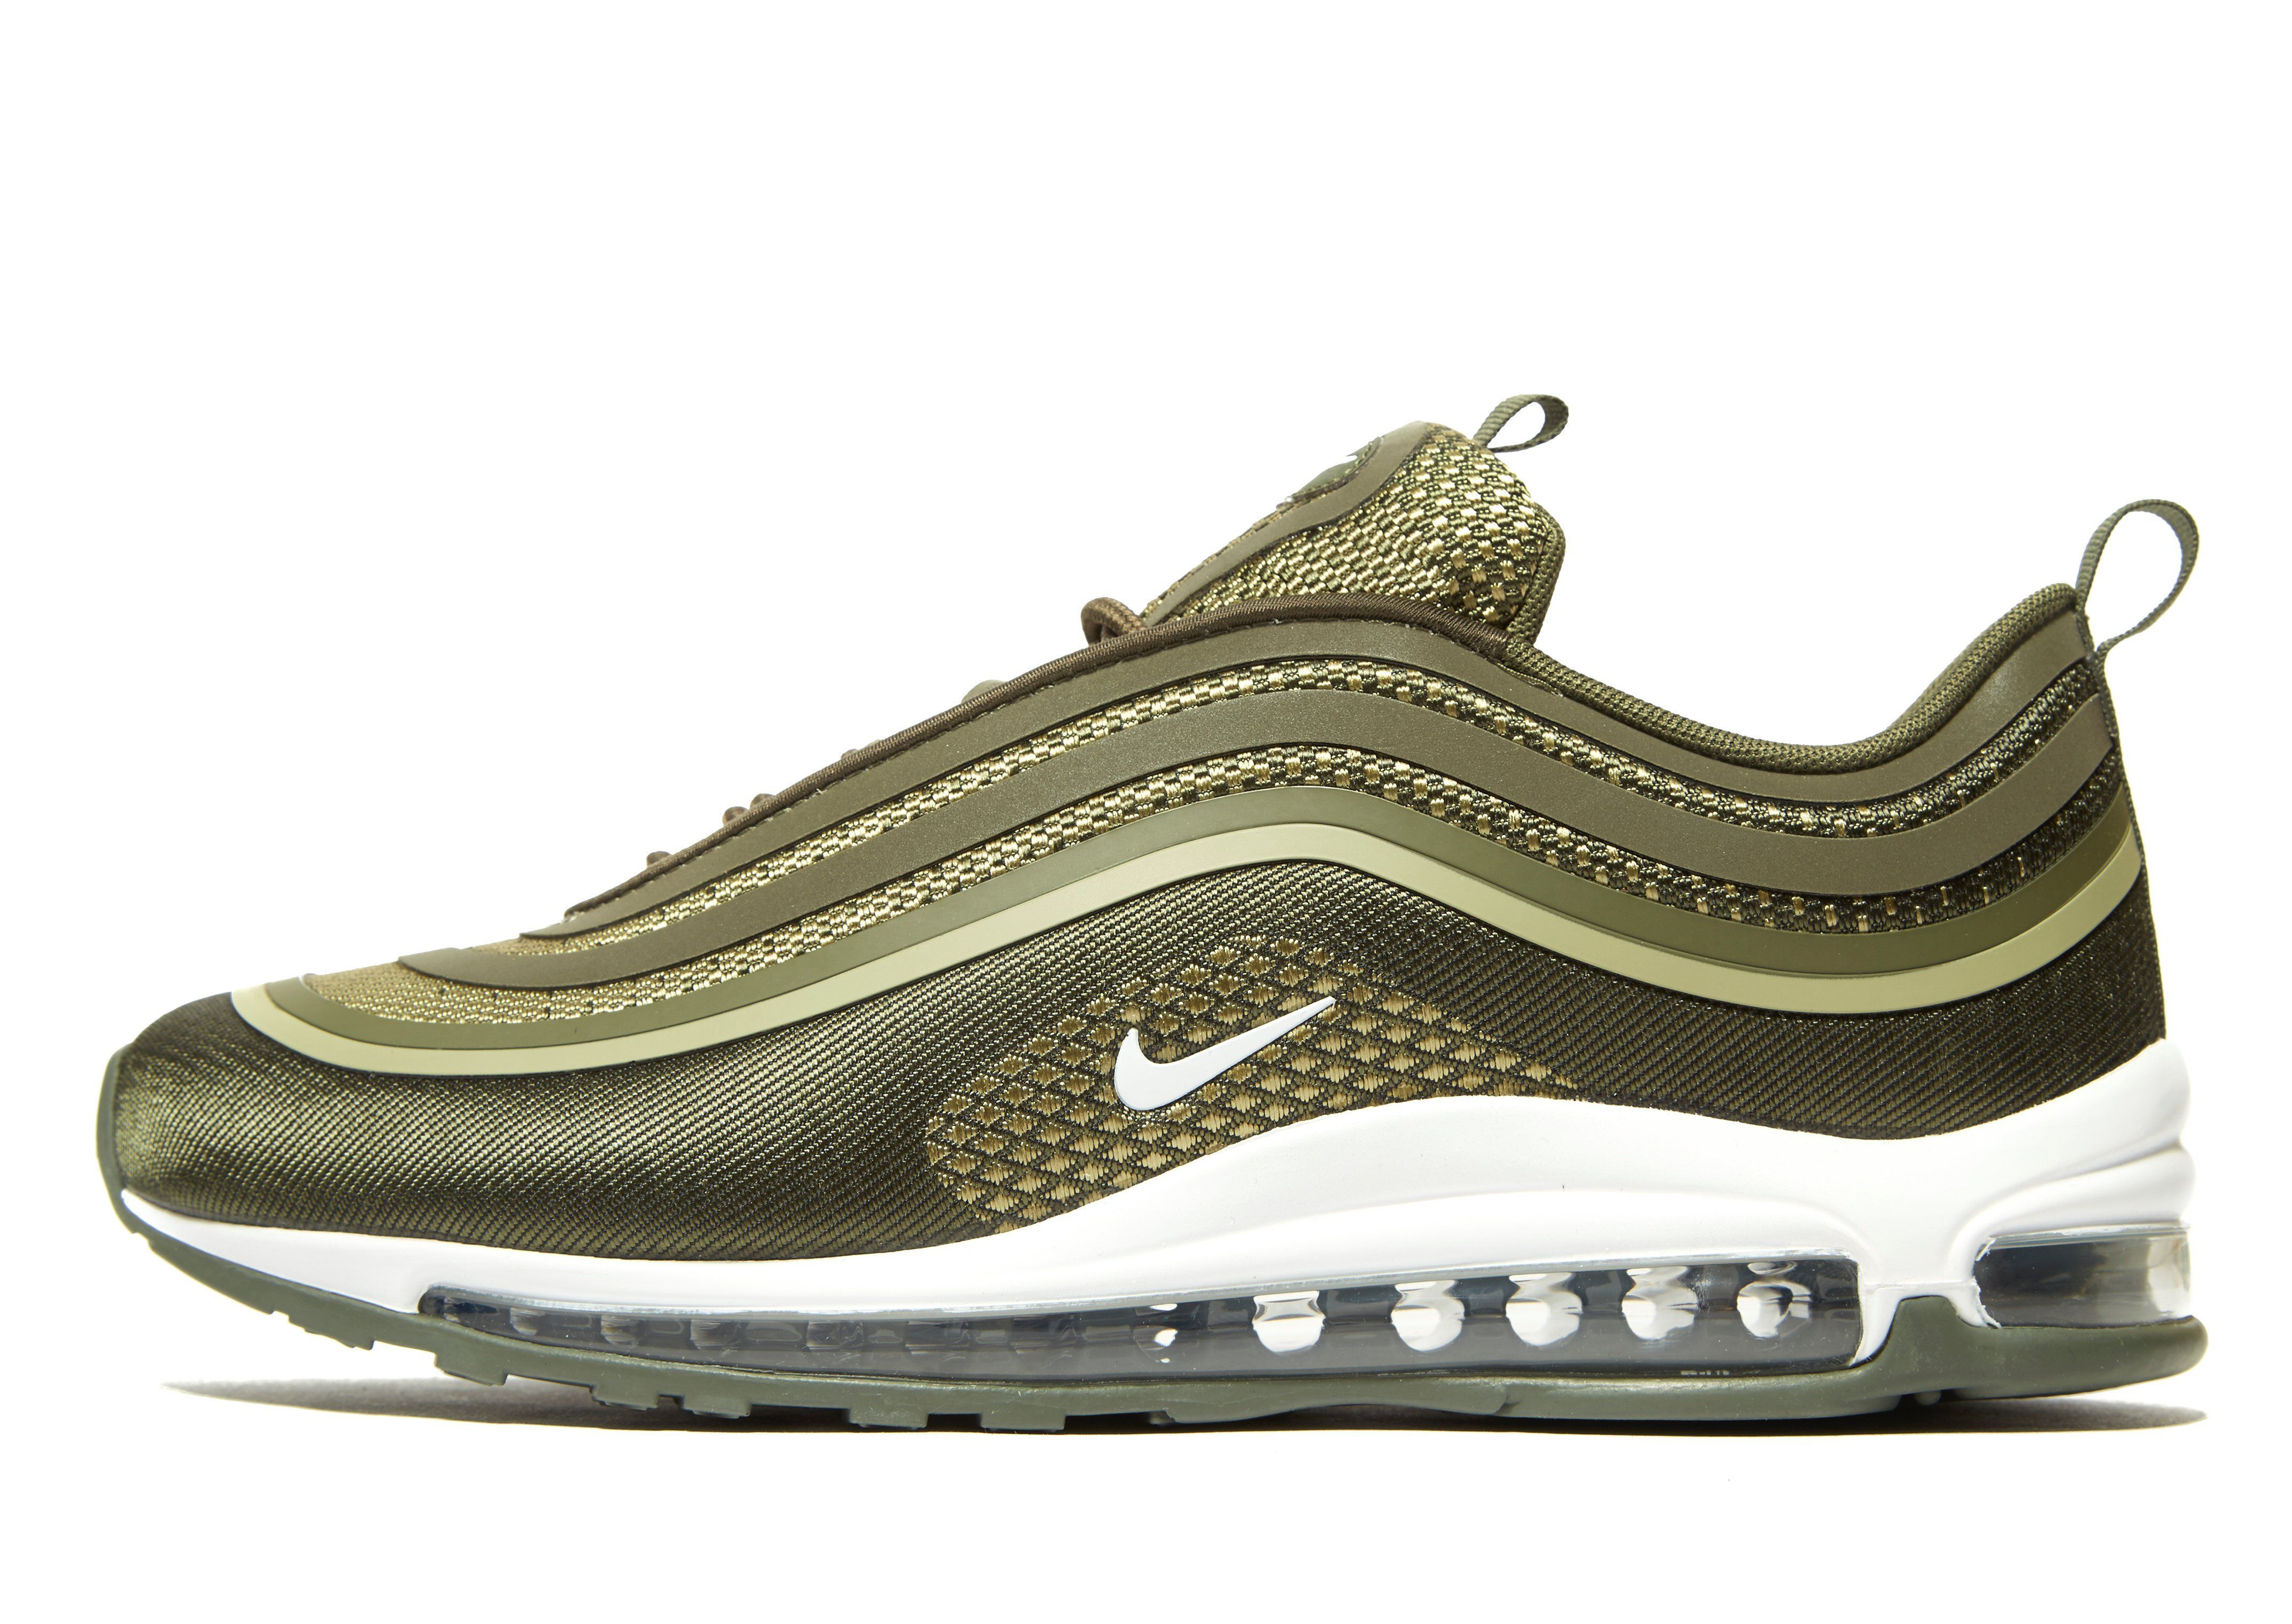 ca41808cd7 Nike Air Max 97 Ultra - Shop online for Nike Air Max 97 Ultra with ...